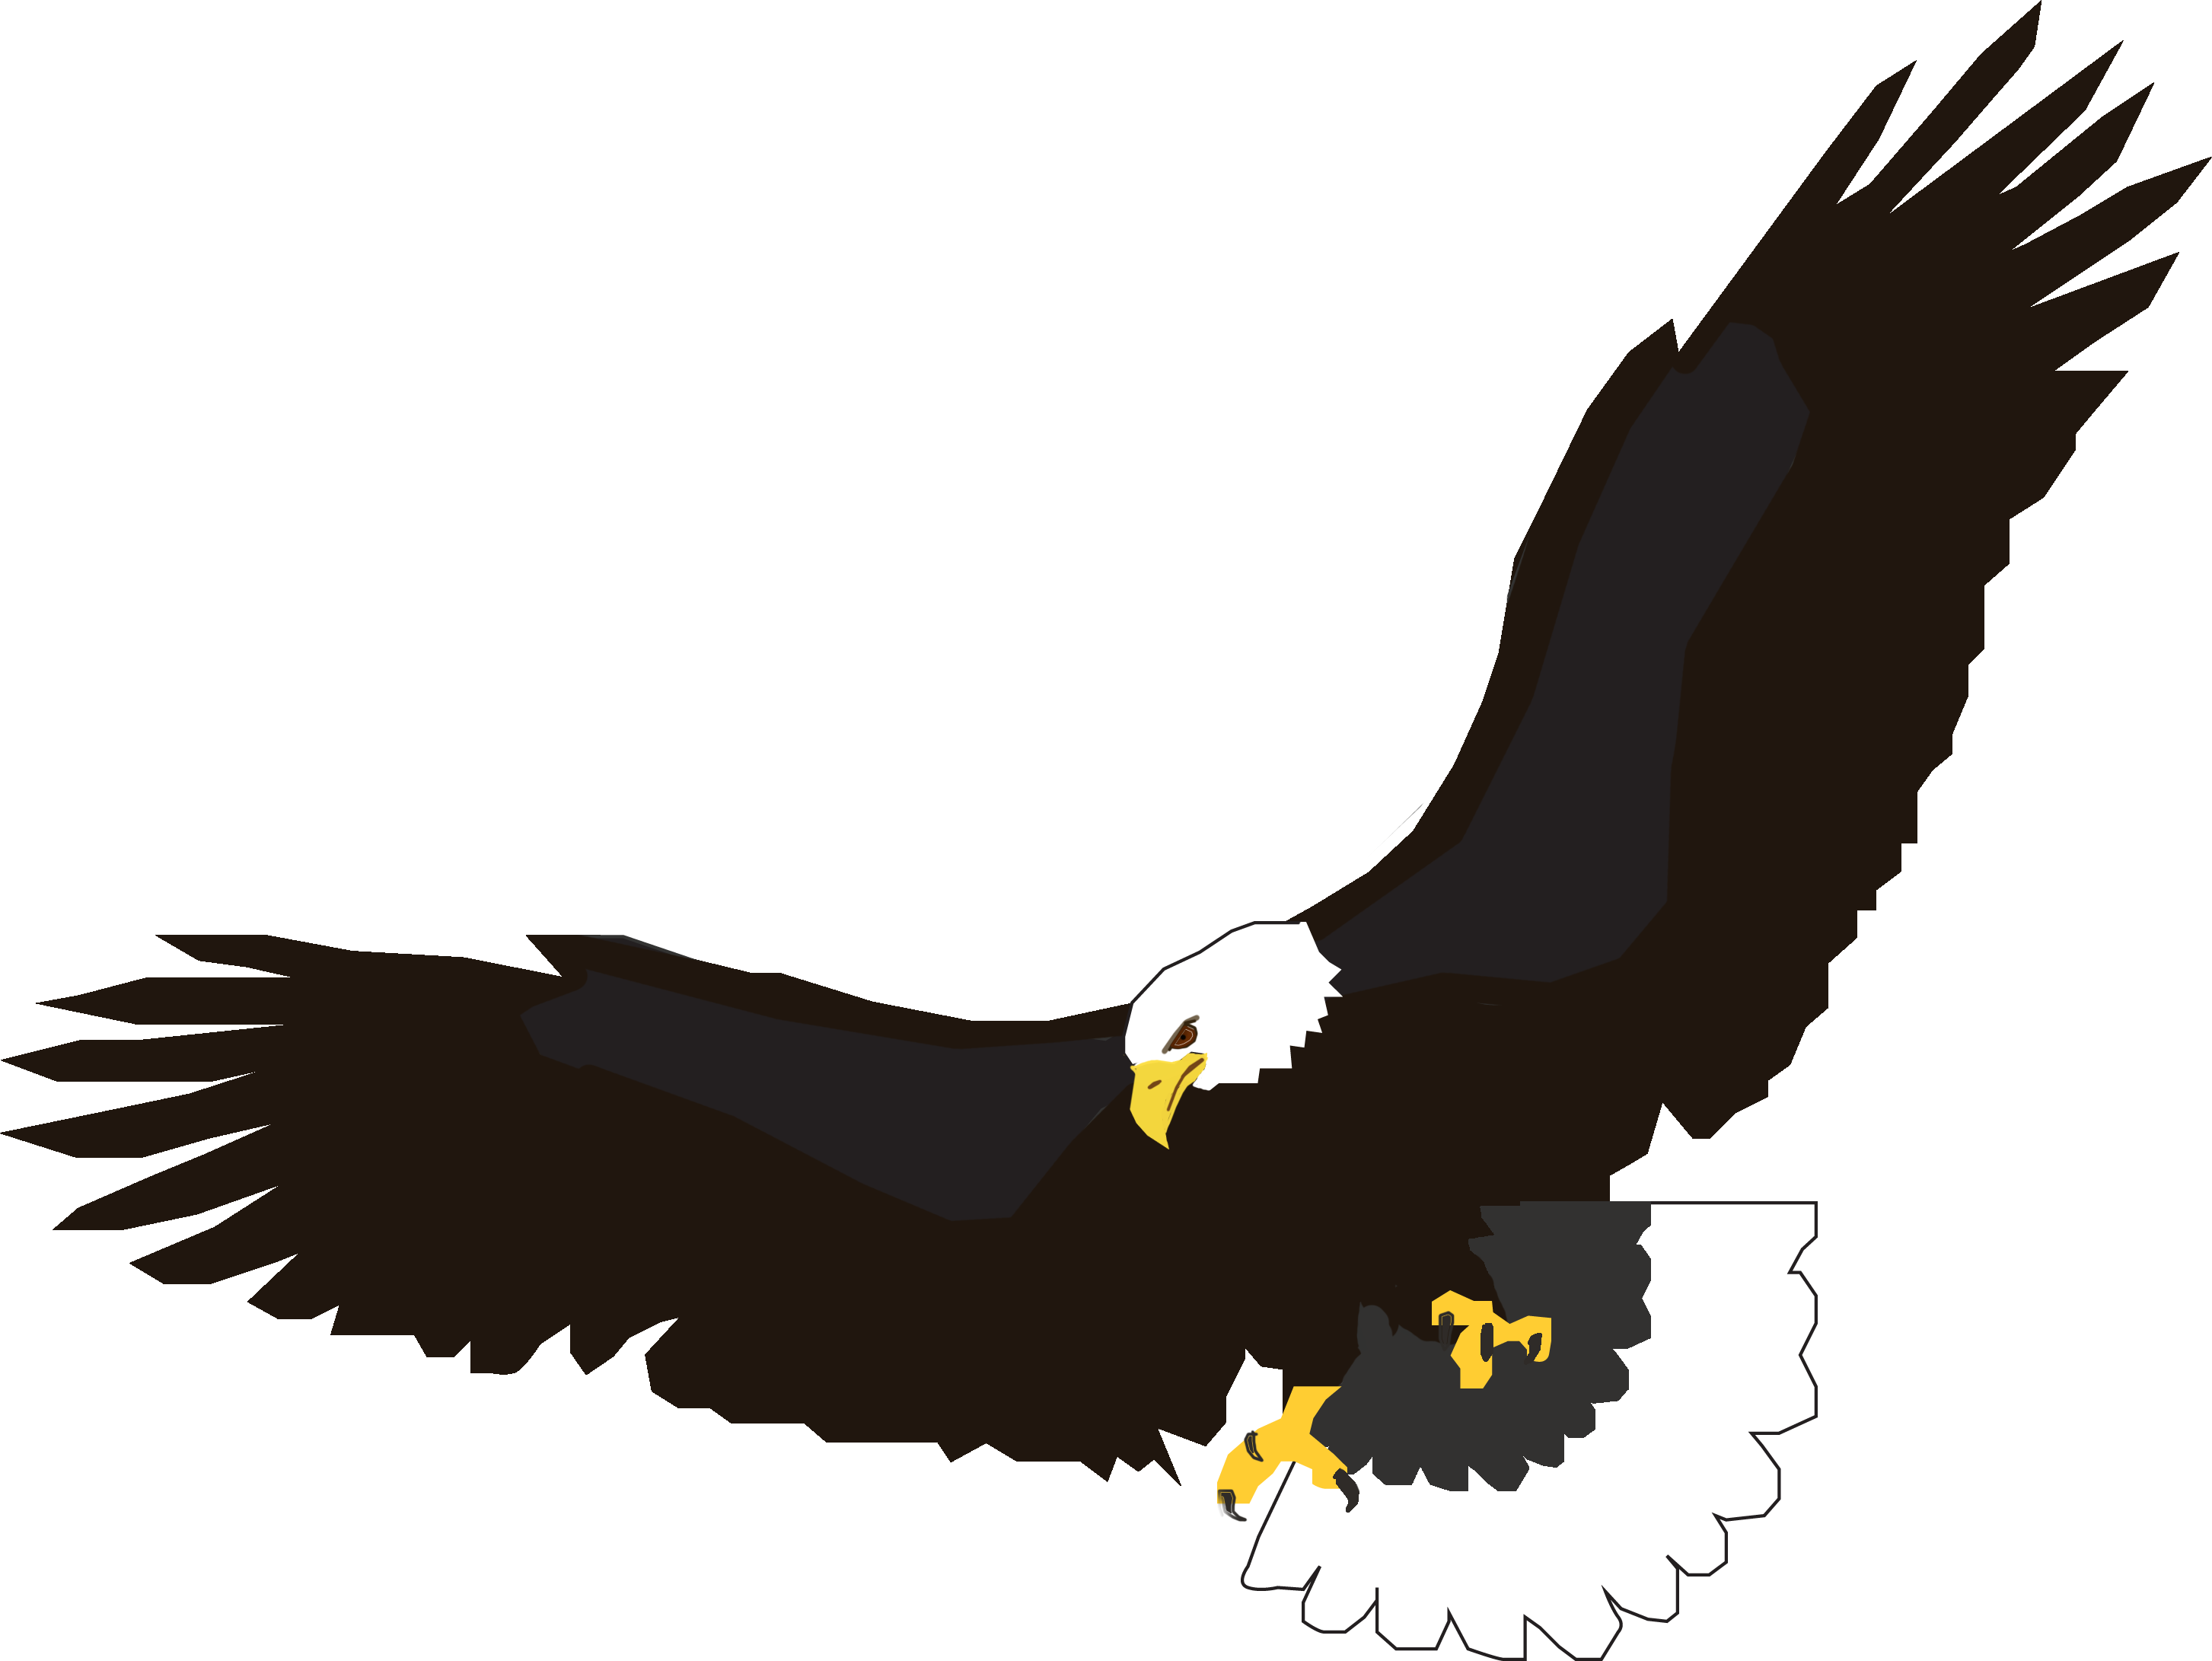 Flying bald eagle clipart - ClipartFest clip art library library